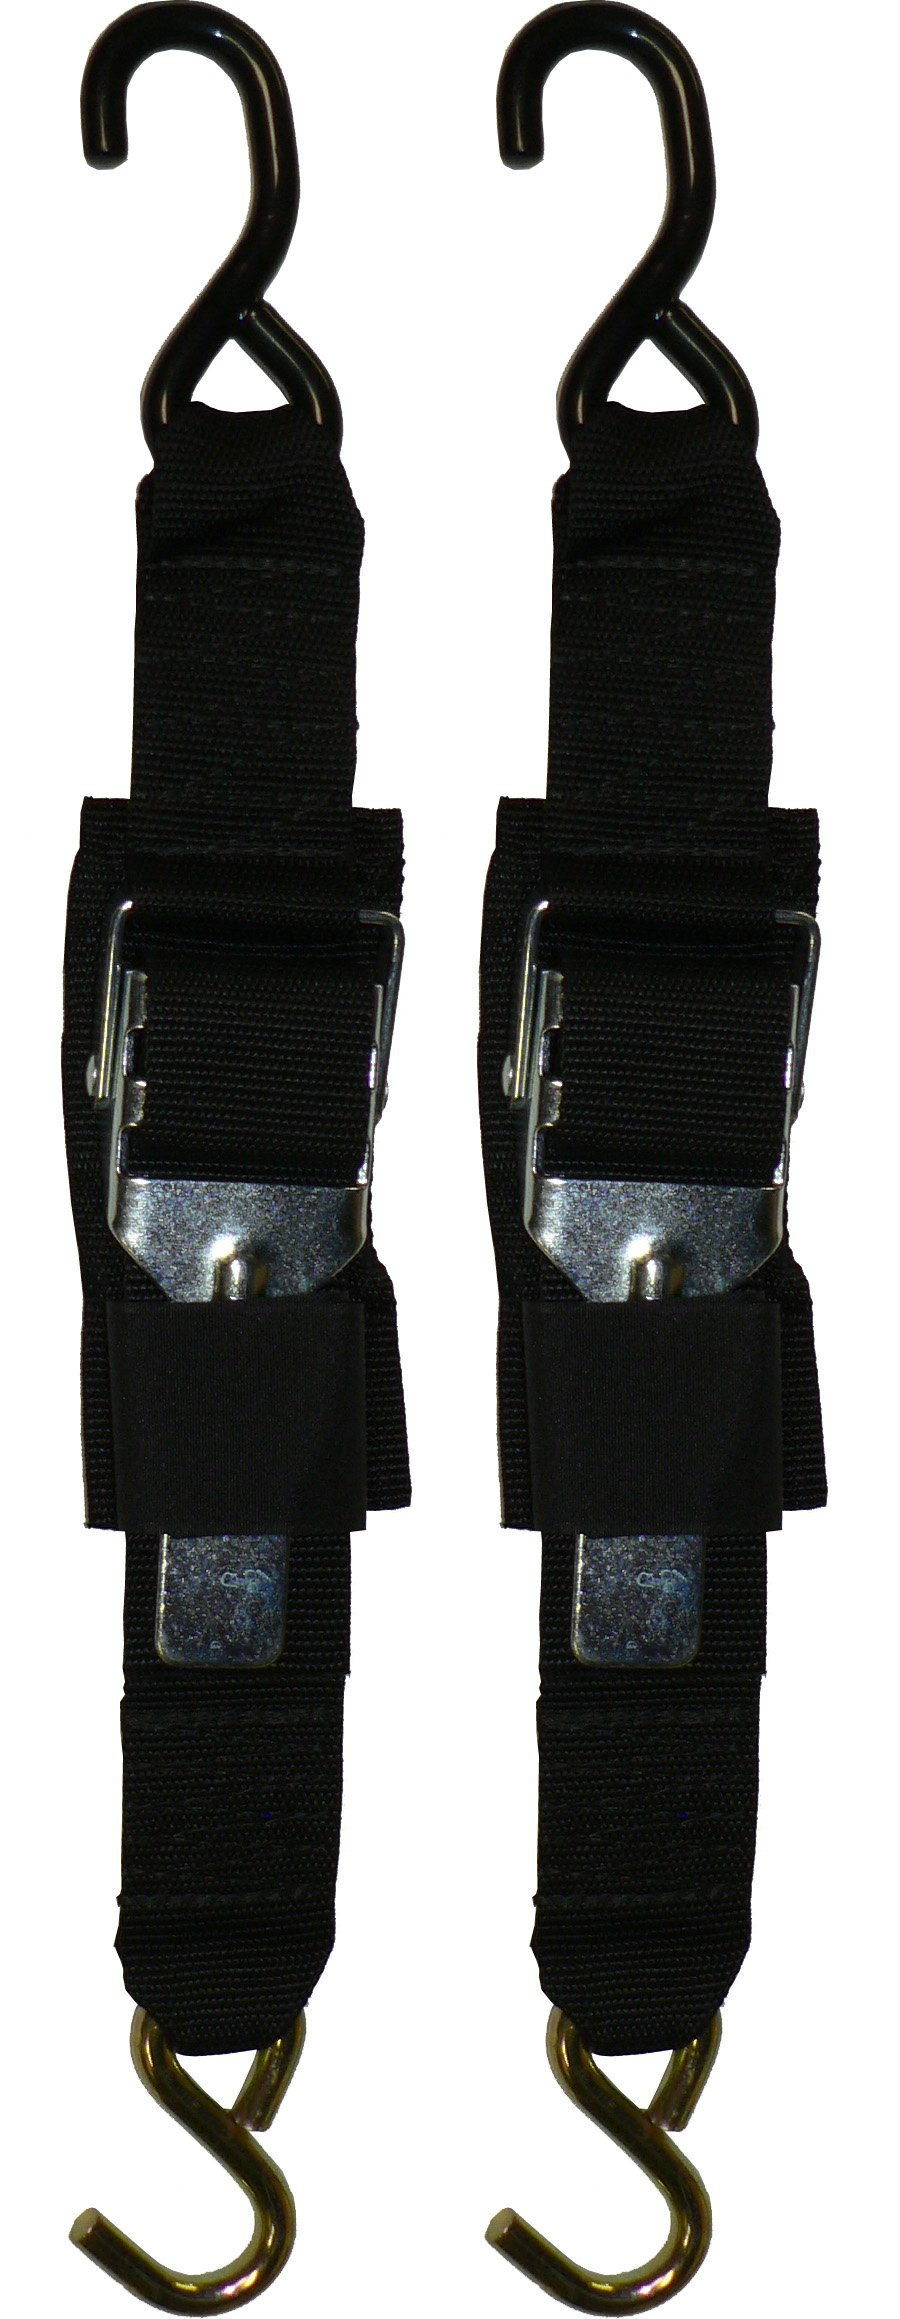 Rod Saver Paddle Buckle 2 inch Trailer Tie-Downs (2 Feet), Pair by Rod Saver Marine Accessories